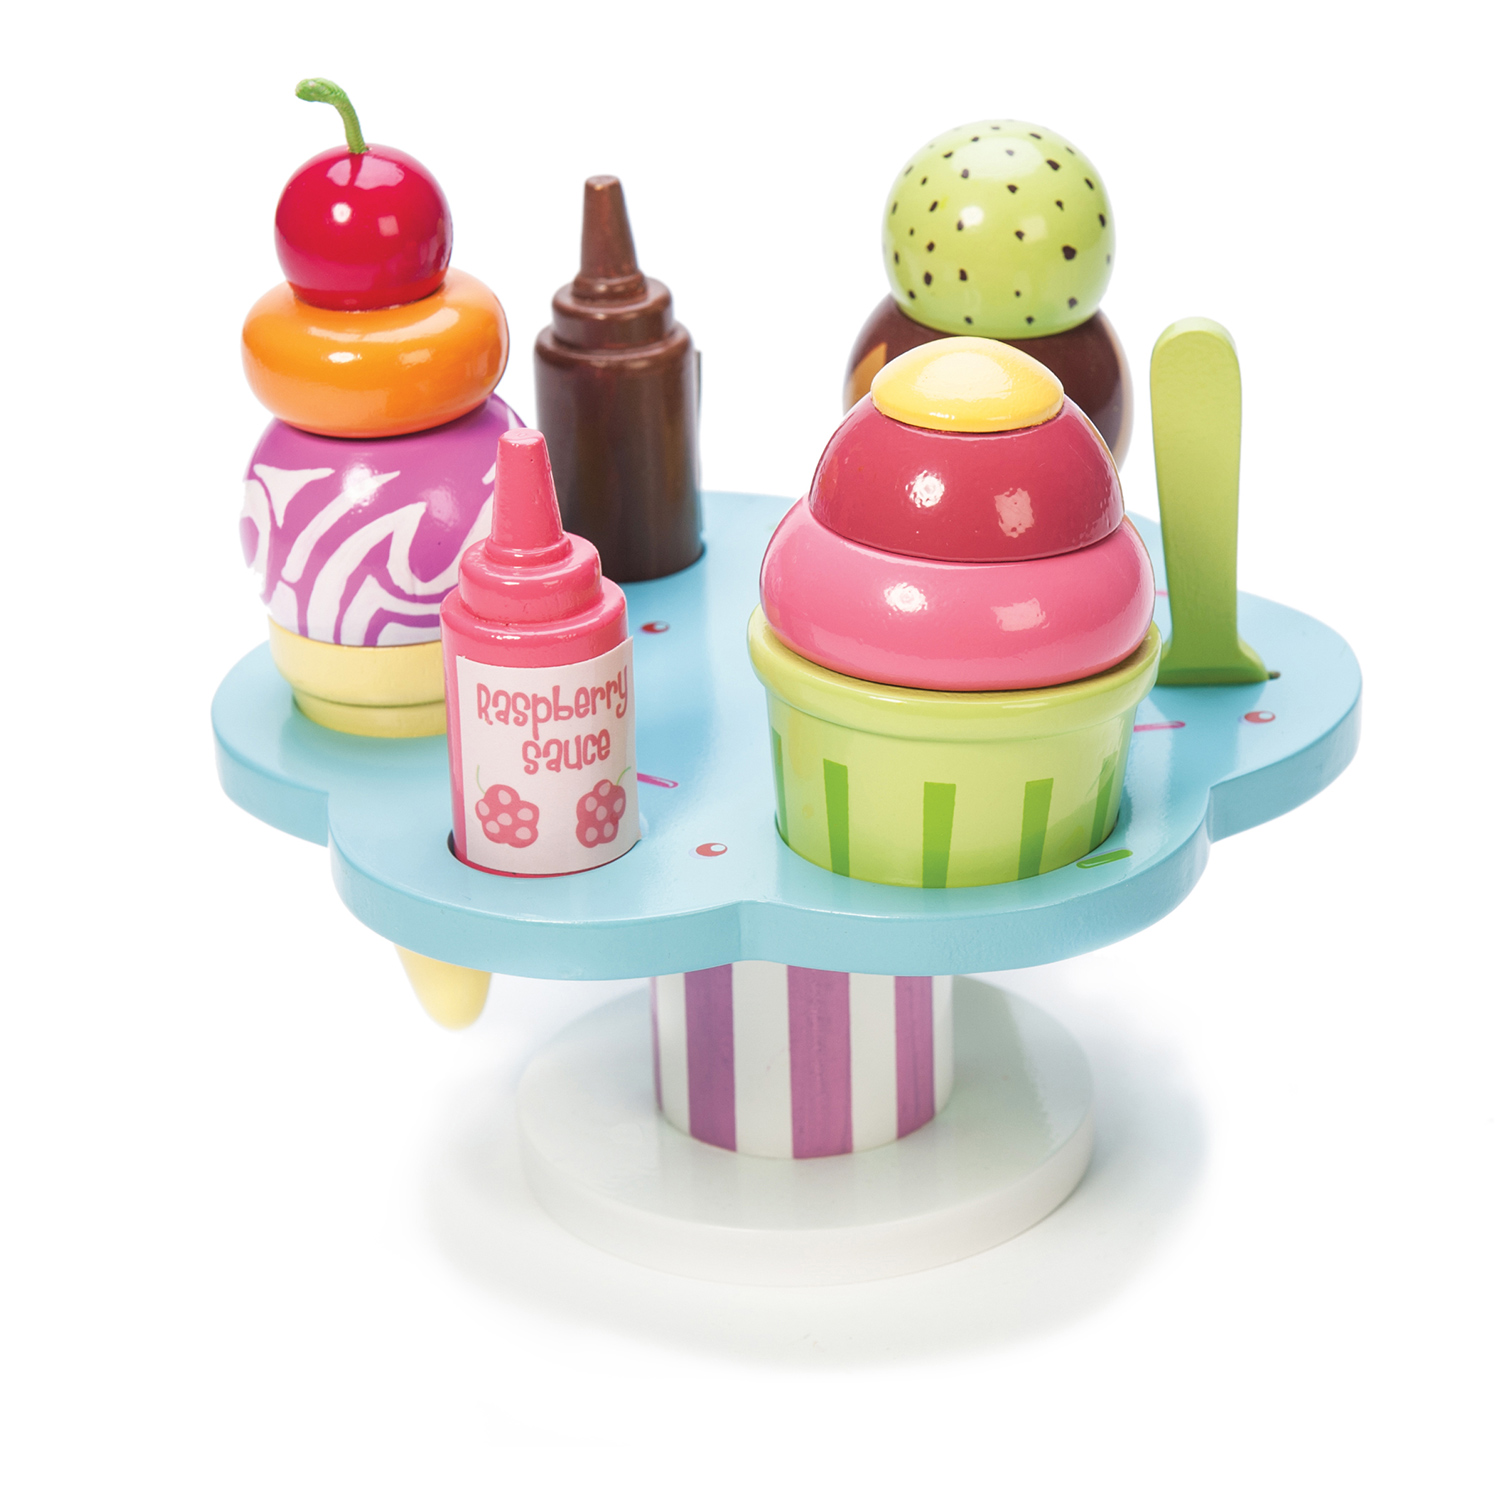 unique baby and kids gifts for christmas   suit your look - carlo's gelato toy ice cream parlour